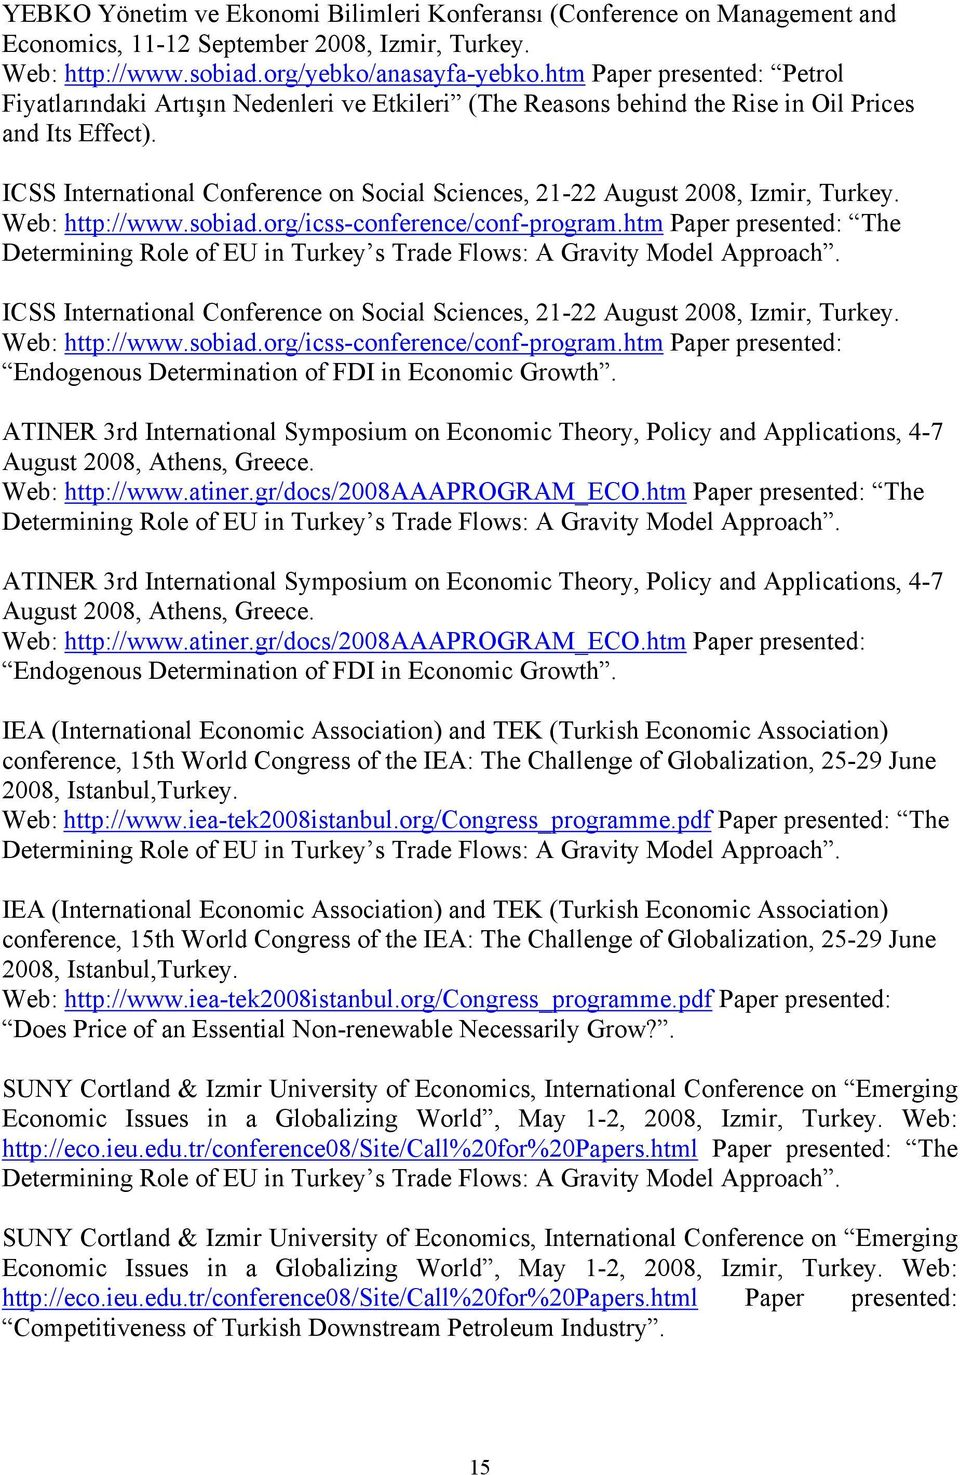 ICSS International Conference on Social Sciences, 21-22 August 2008, Izmir, Turkey. Web: http://www.sobiad.org/icss-conference/conf-program.